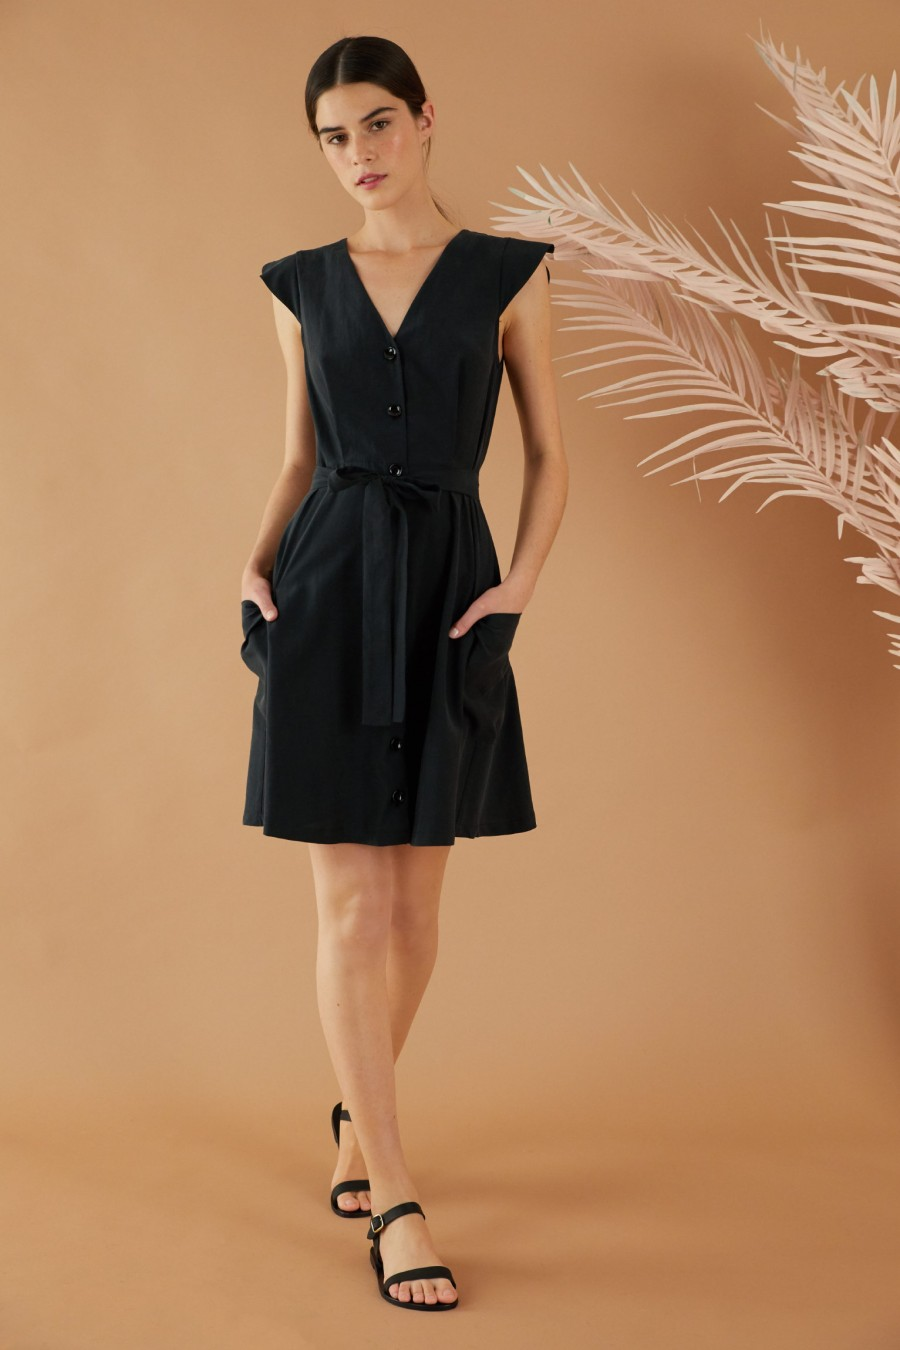 Black summer dress with pockets